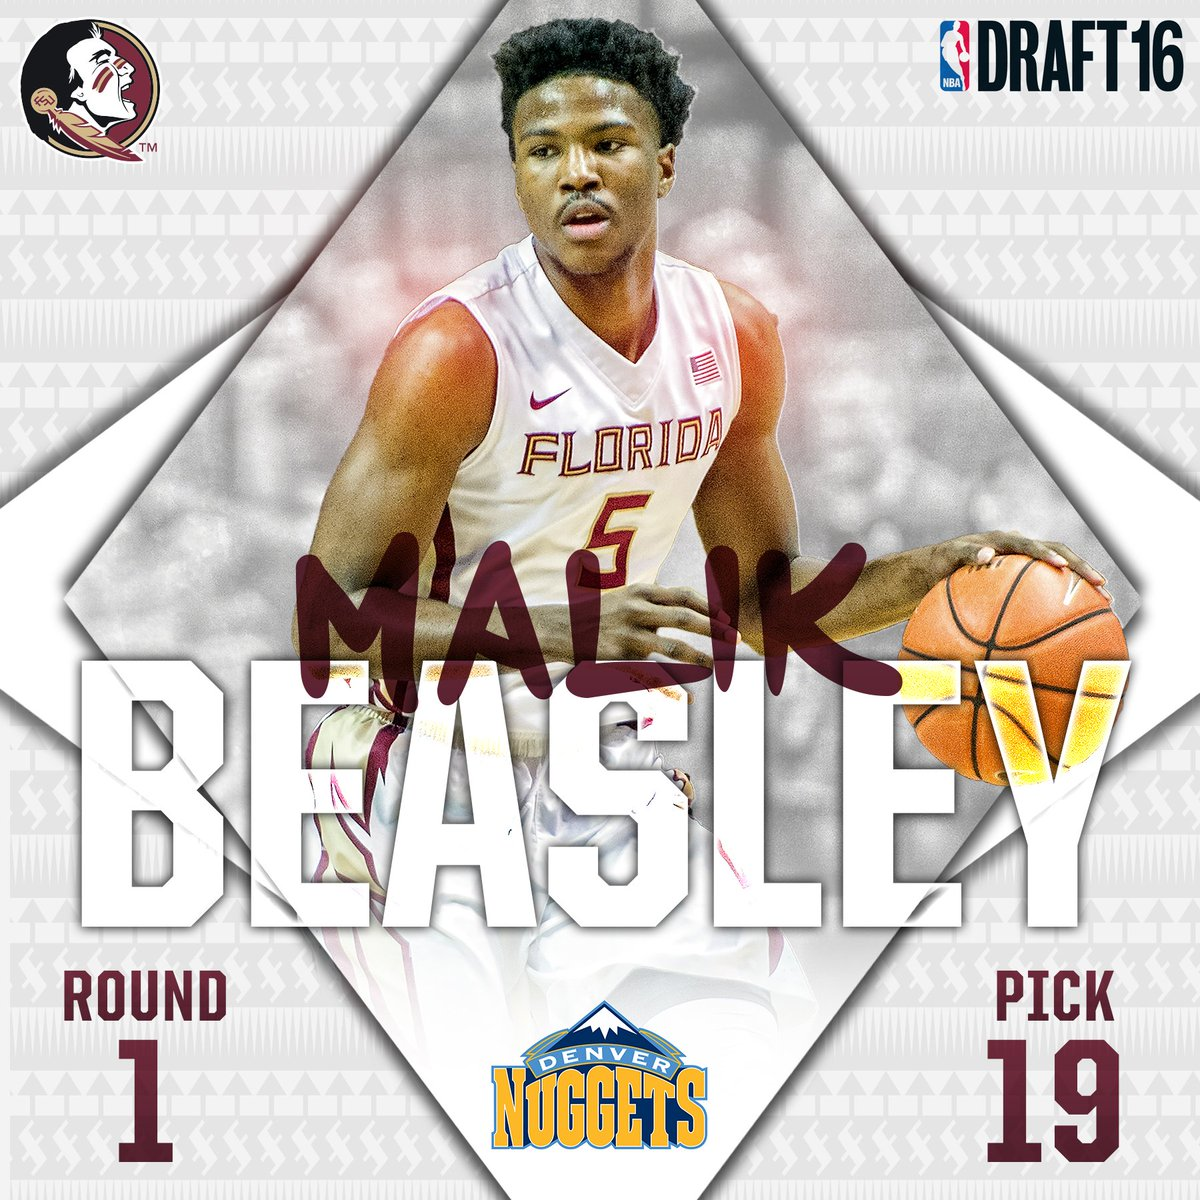 Nuggets select @Mbeasy5 with the 19th pick in the 1st round. #NBADraft2016 https://t.co/glPZISDfq9